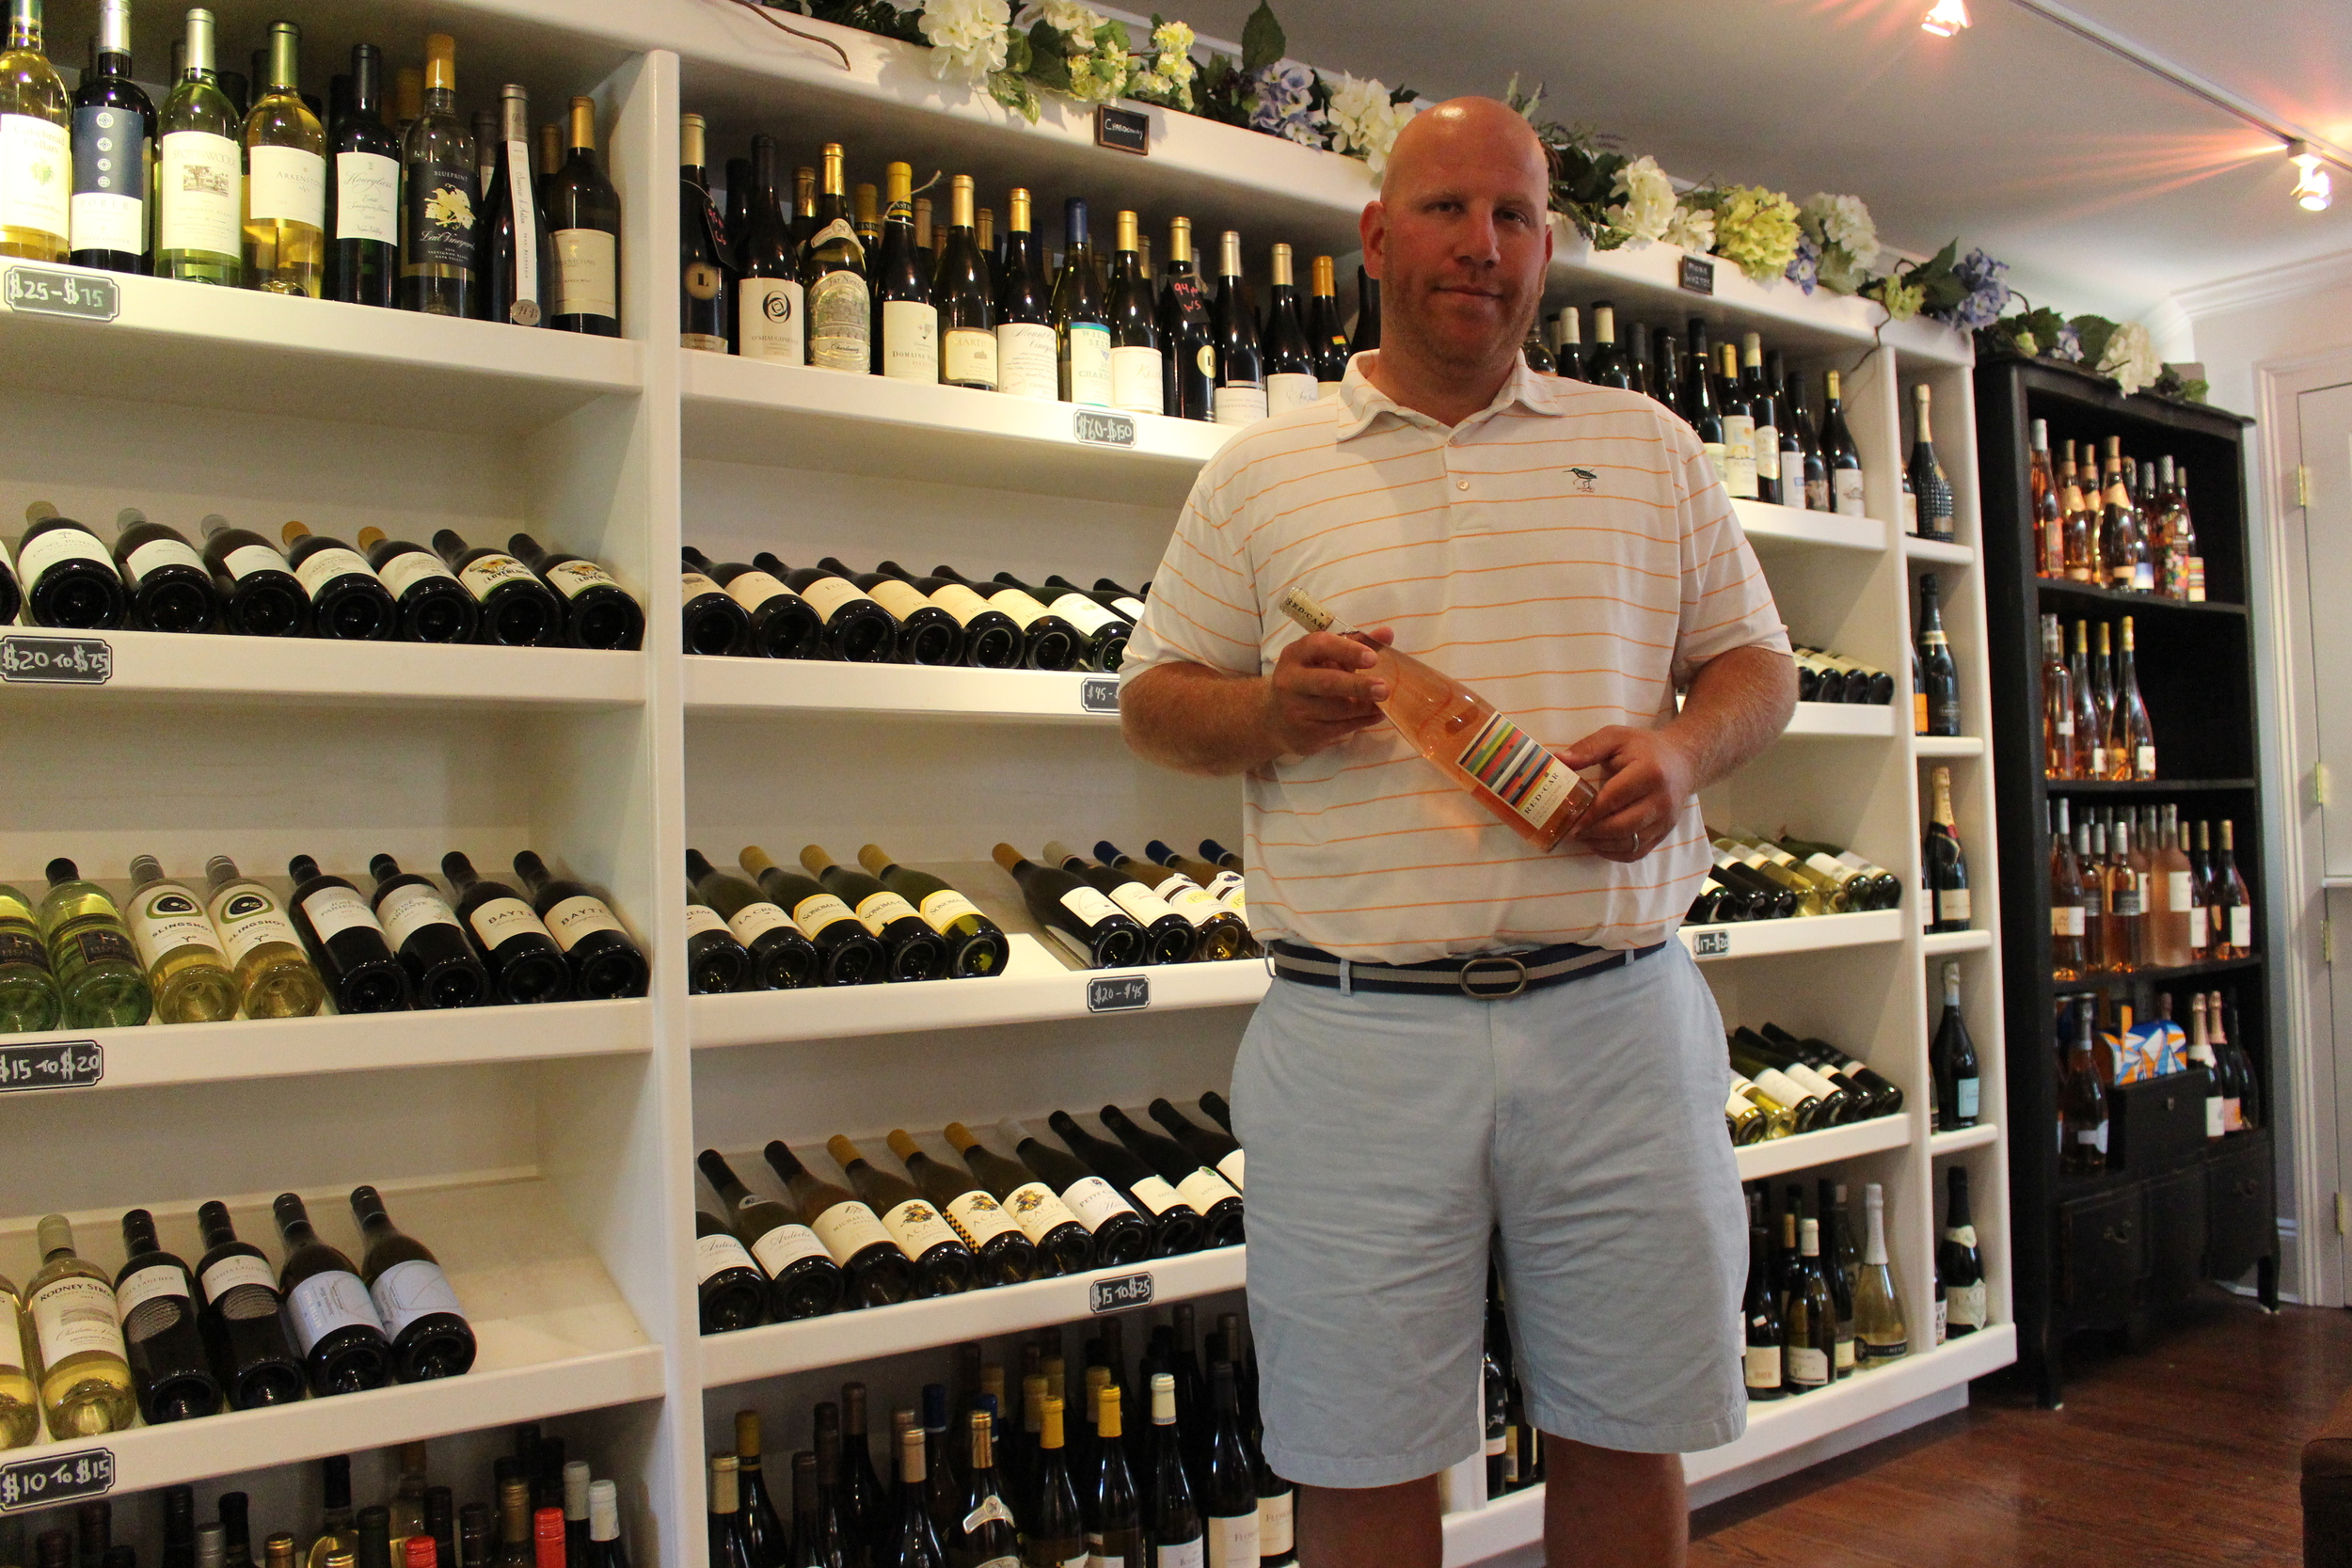 Andrew Robinstein, owner of Cold Spring Harbor Wine Shoppe, holding a popular and rare bottle of Pinot Noir California Red Car.